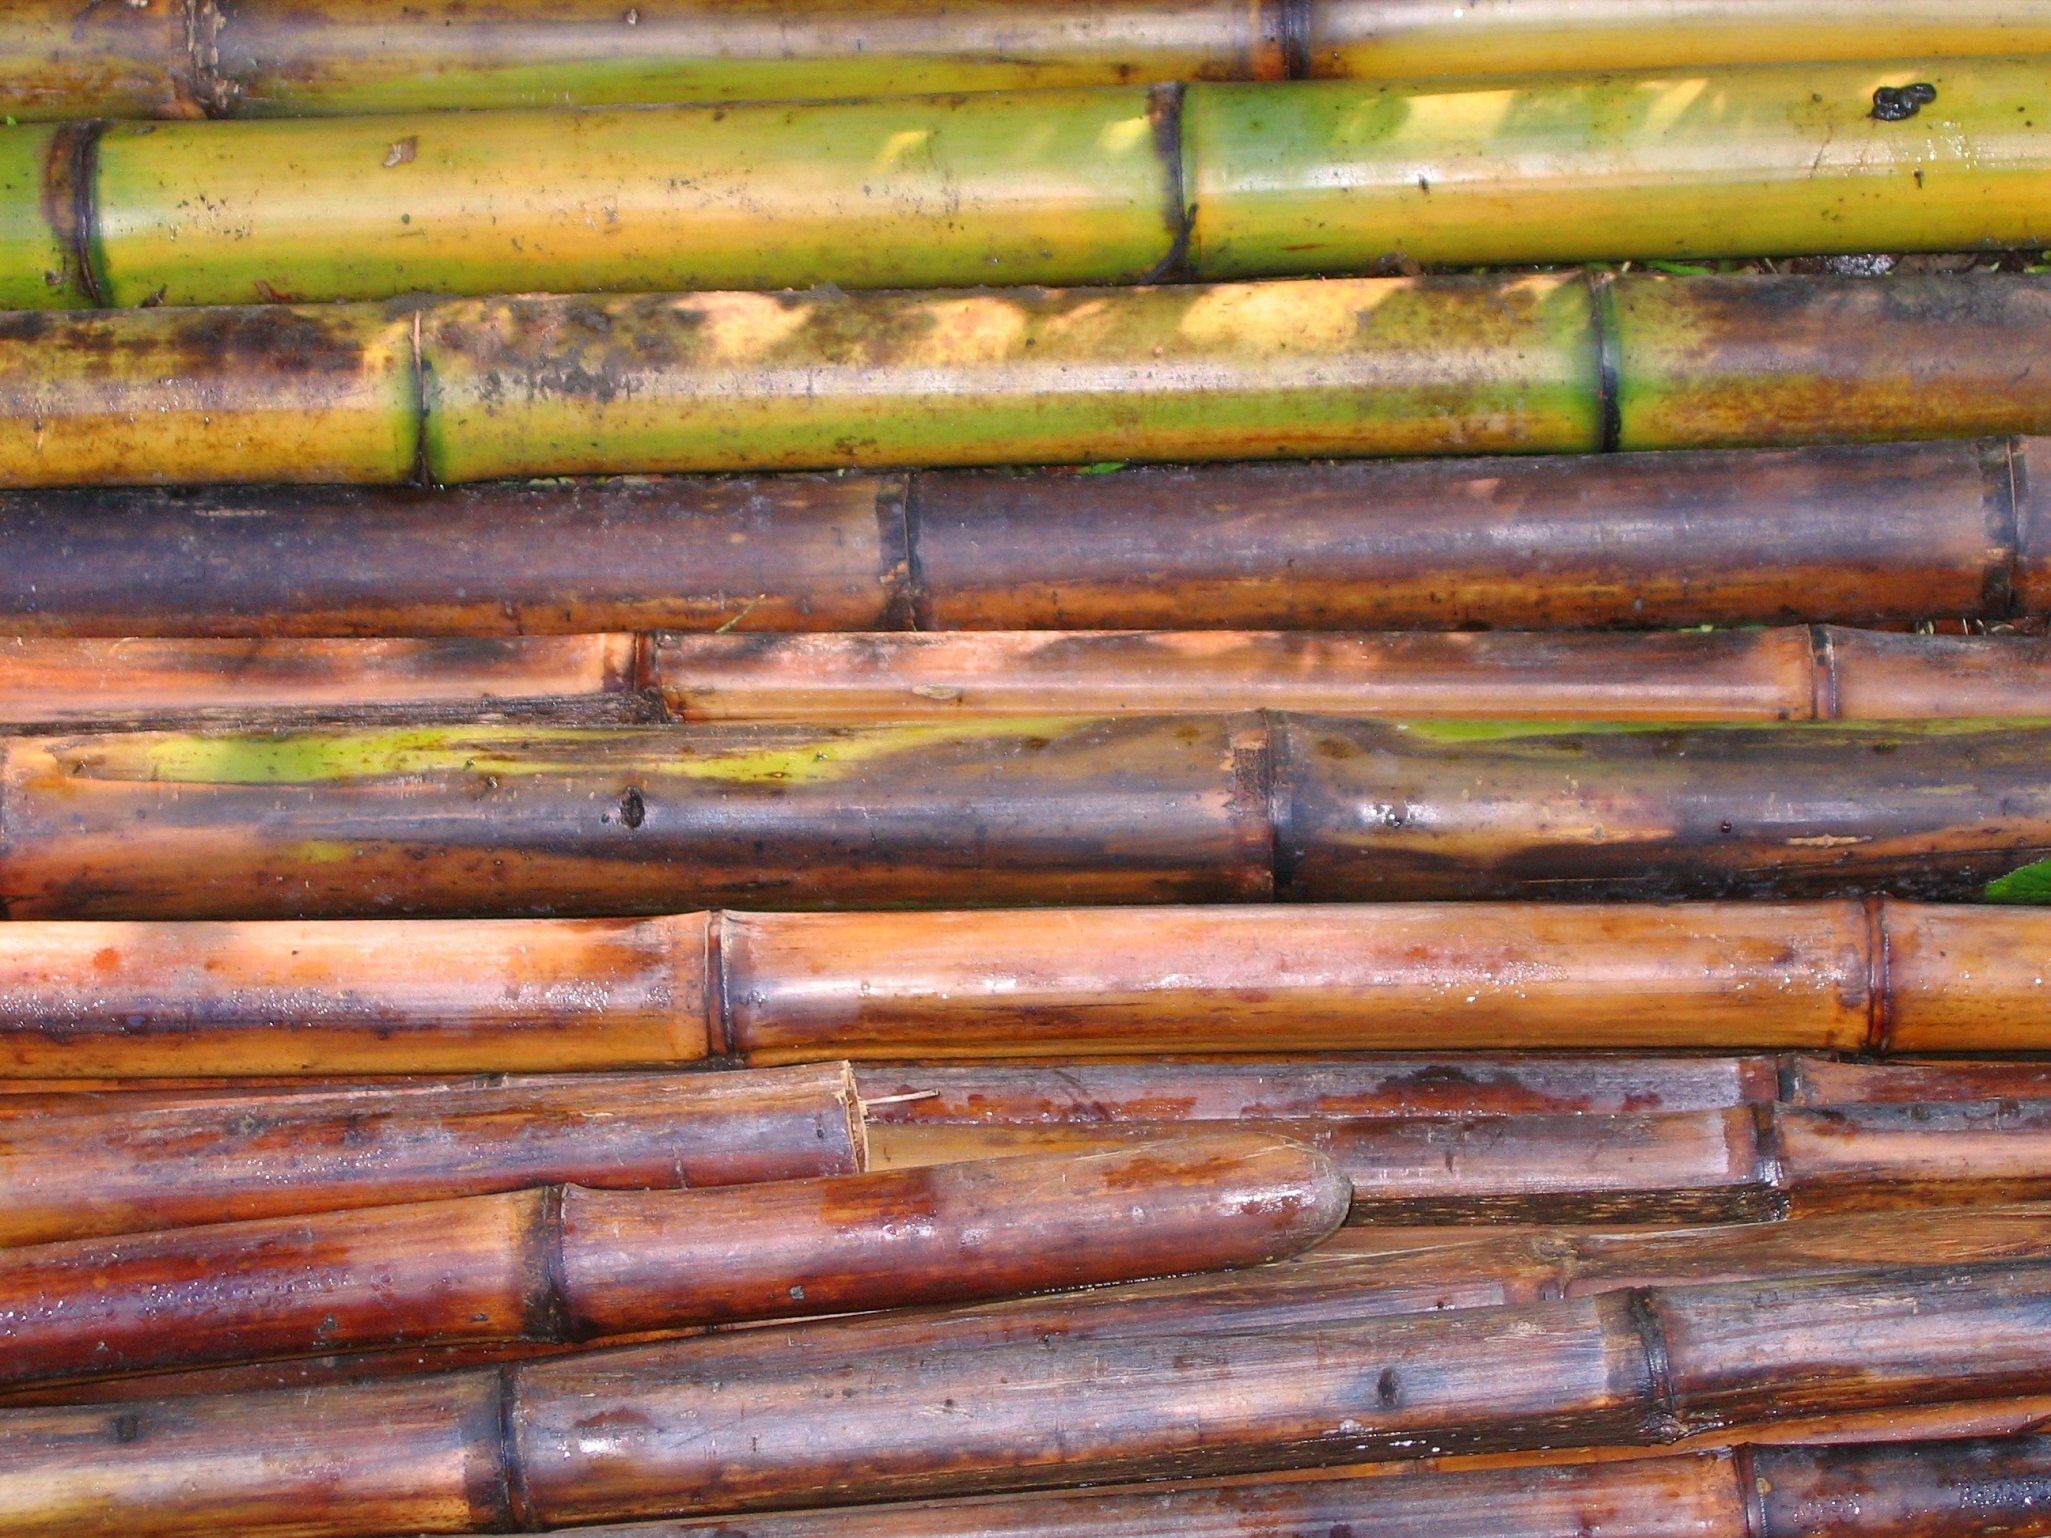 Freshly Cut Bamboo Poles, Asia, Pole, Weight, Useful, HQ Photo